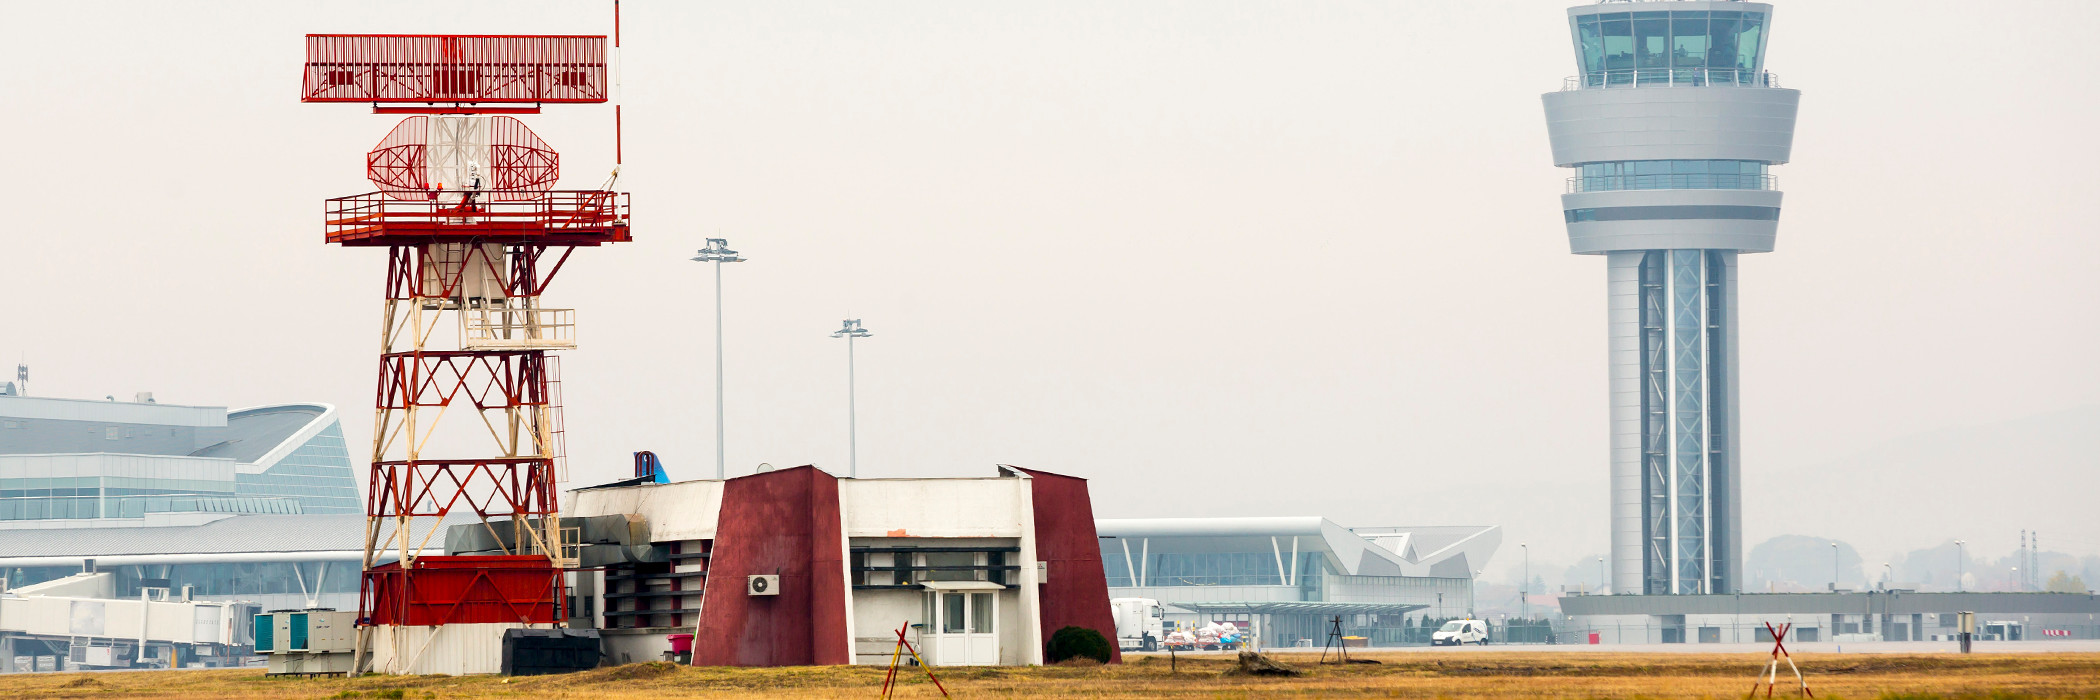 Air traffic control towers